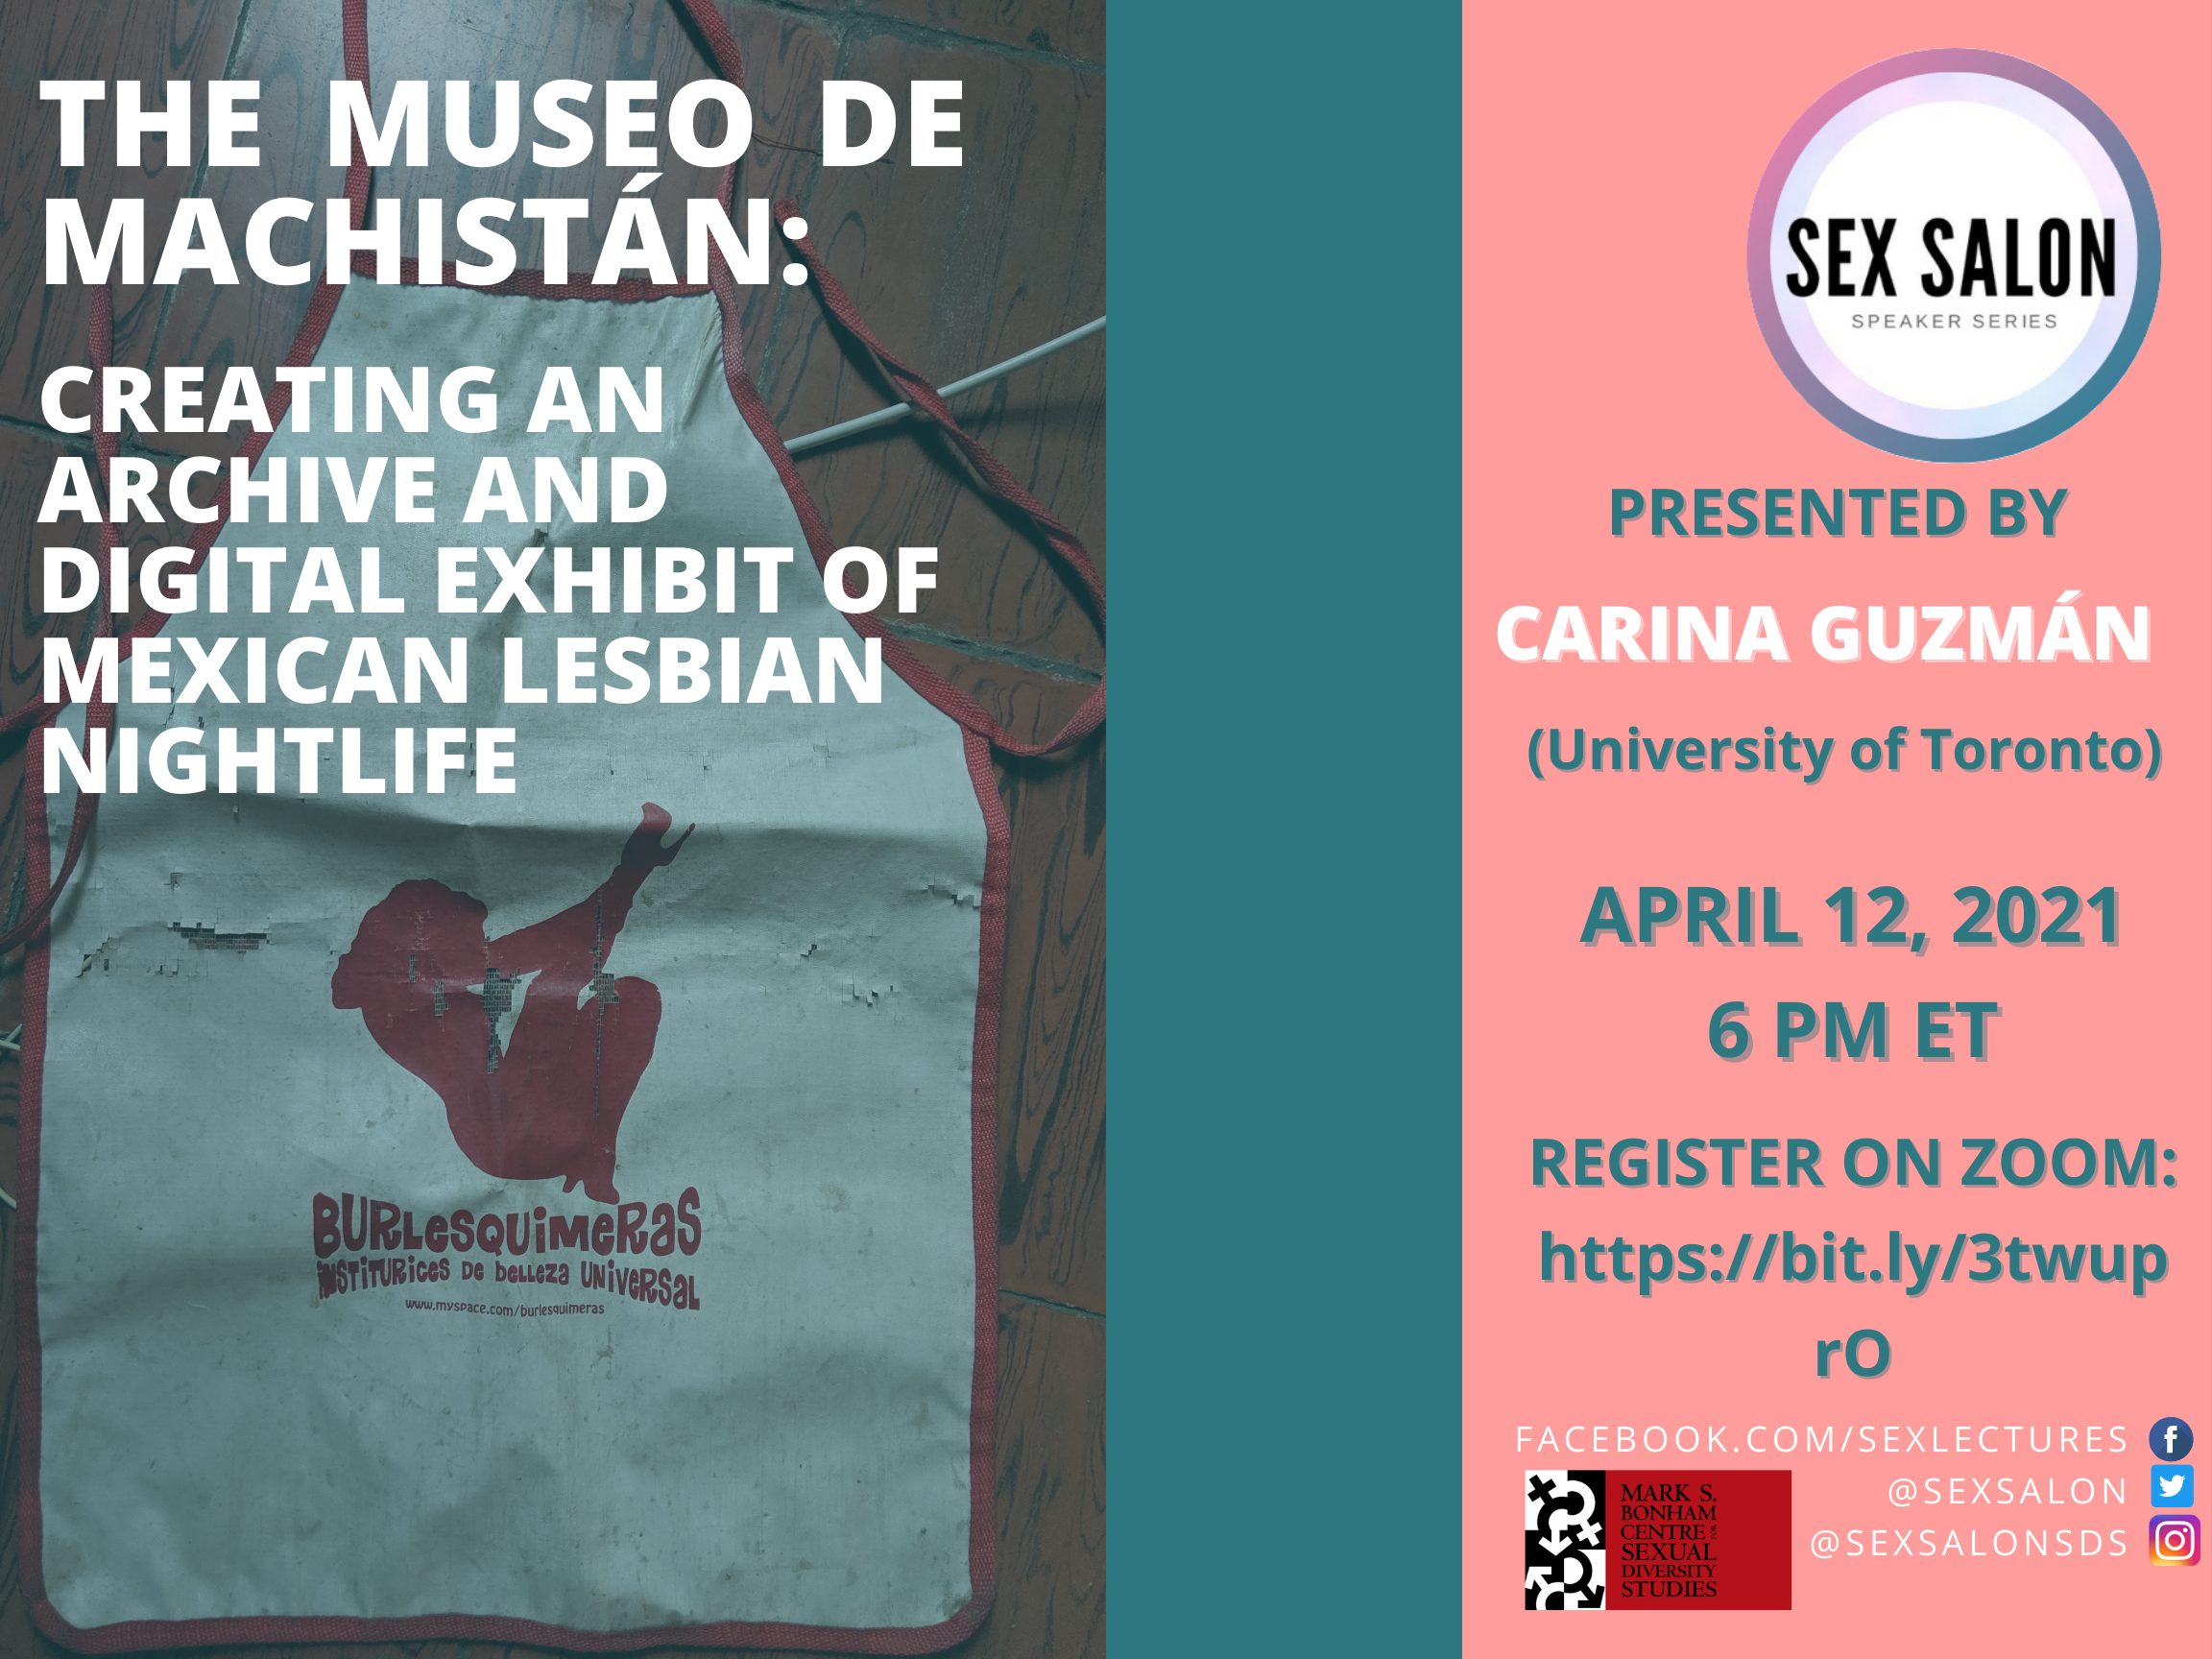 Sex Salon: The Museo de Machistán: Creating an Archive and Digital Exhibit of Mexican Lesbian Nightlife